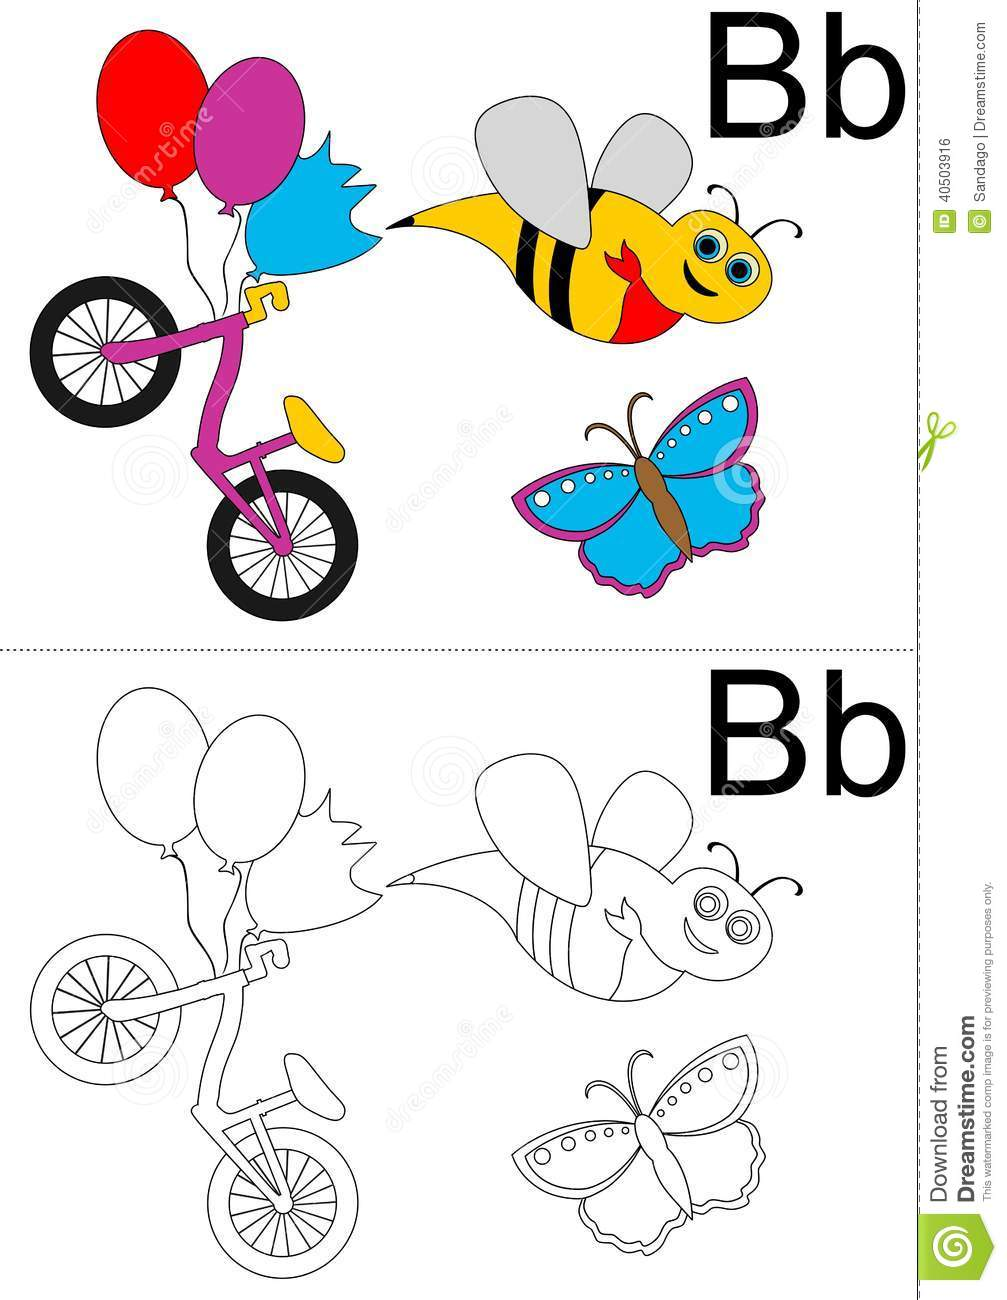 Letter B Worksheet Stock Vector - Image: 40503916